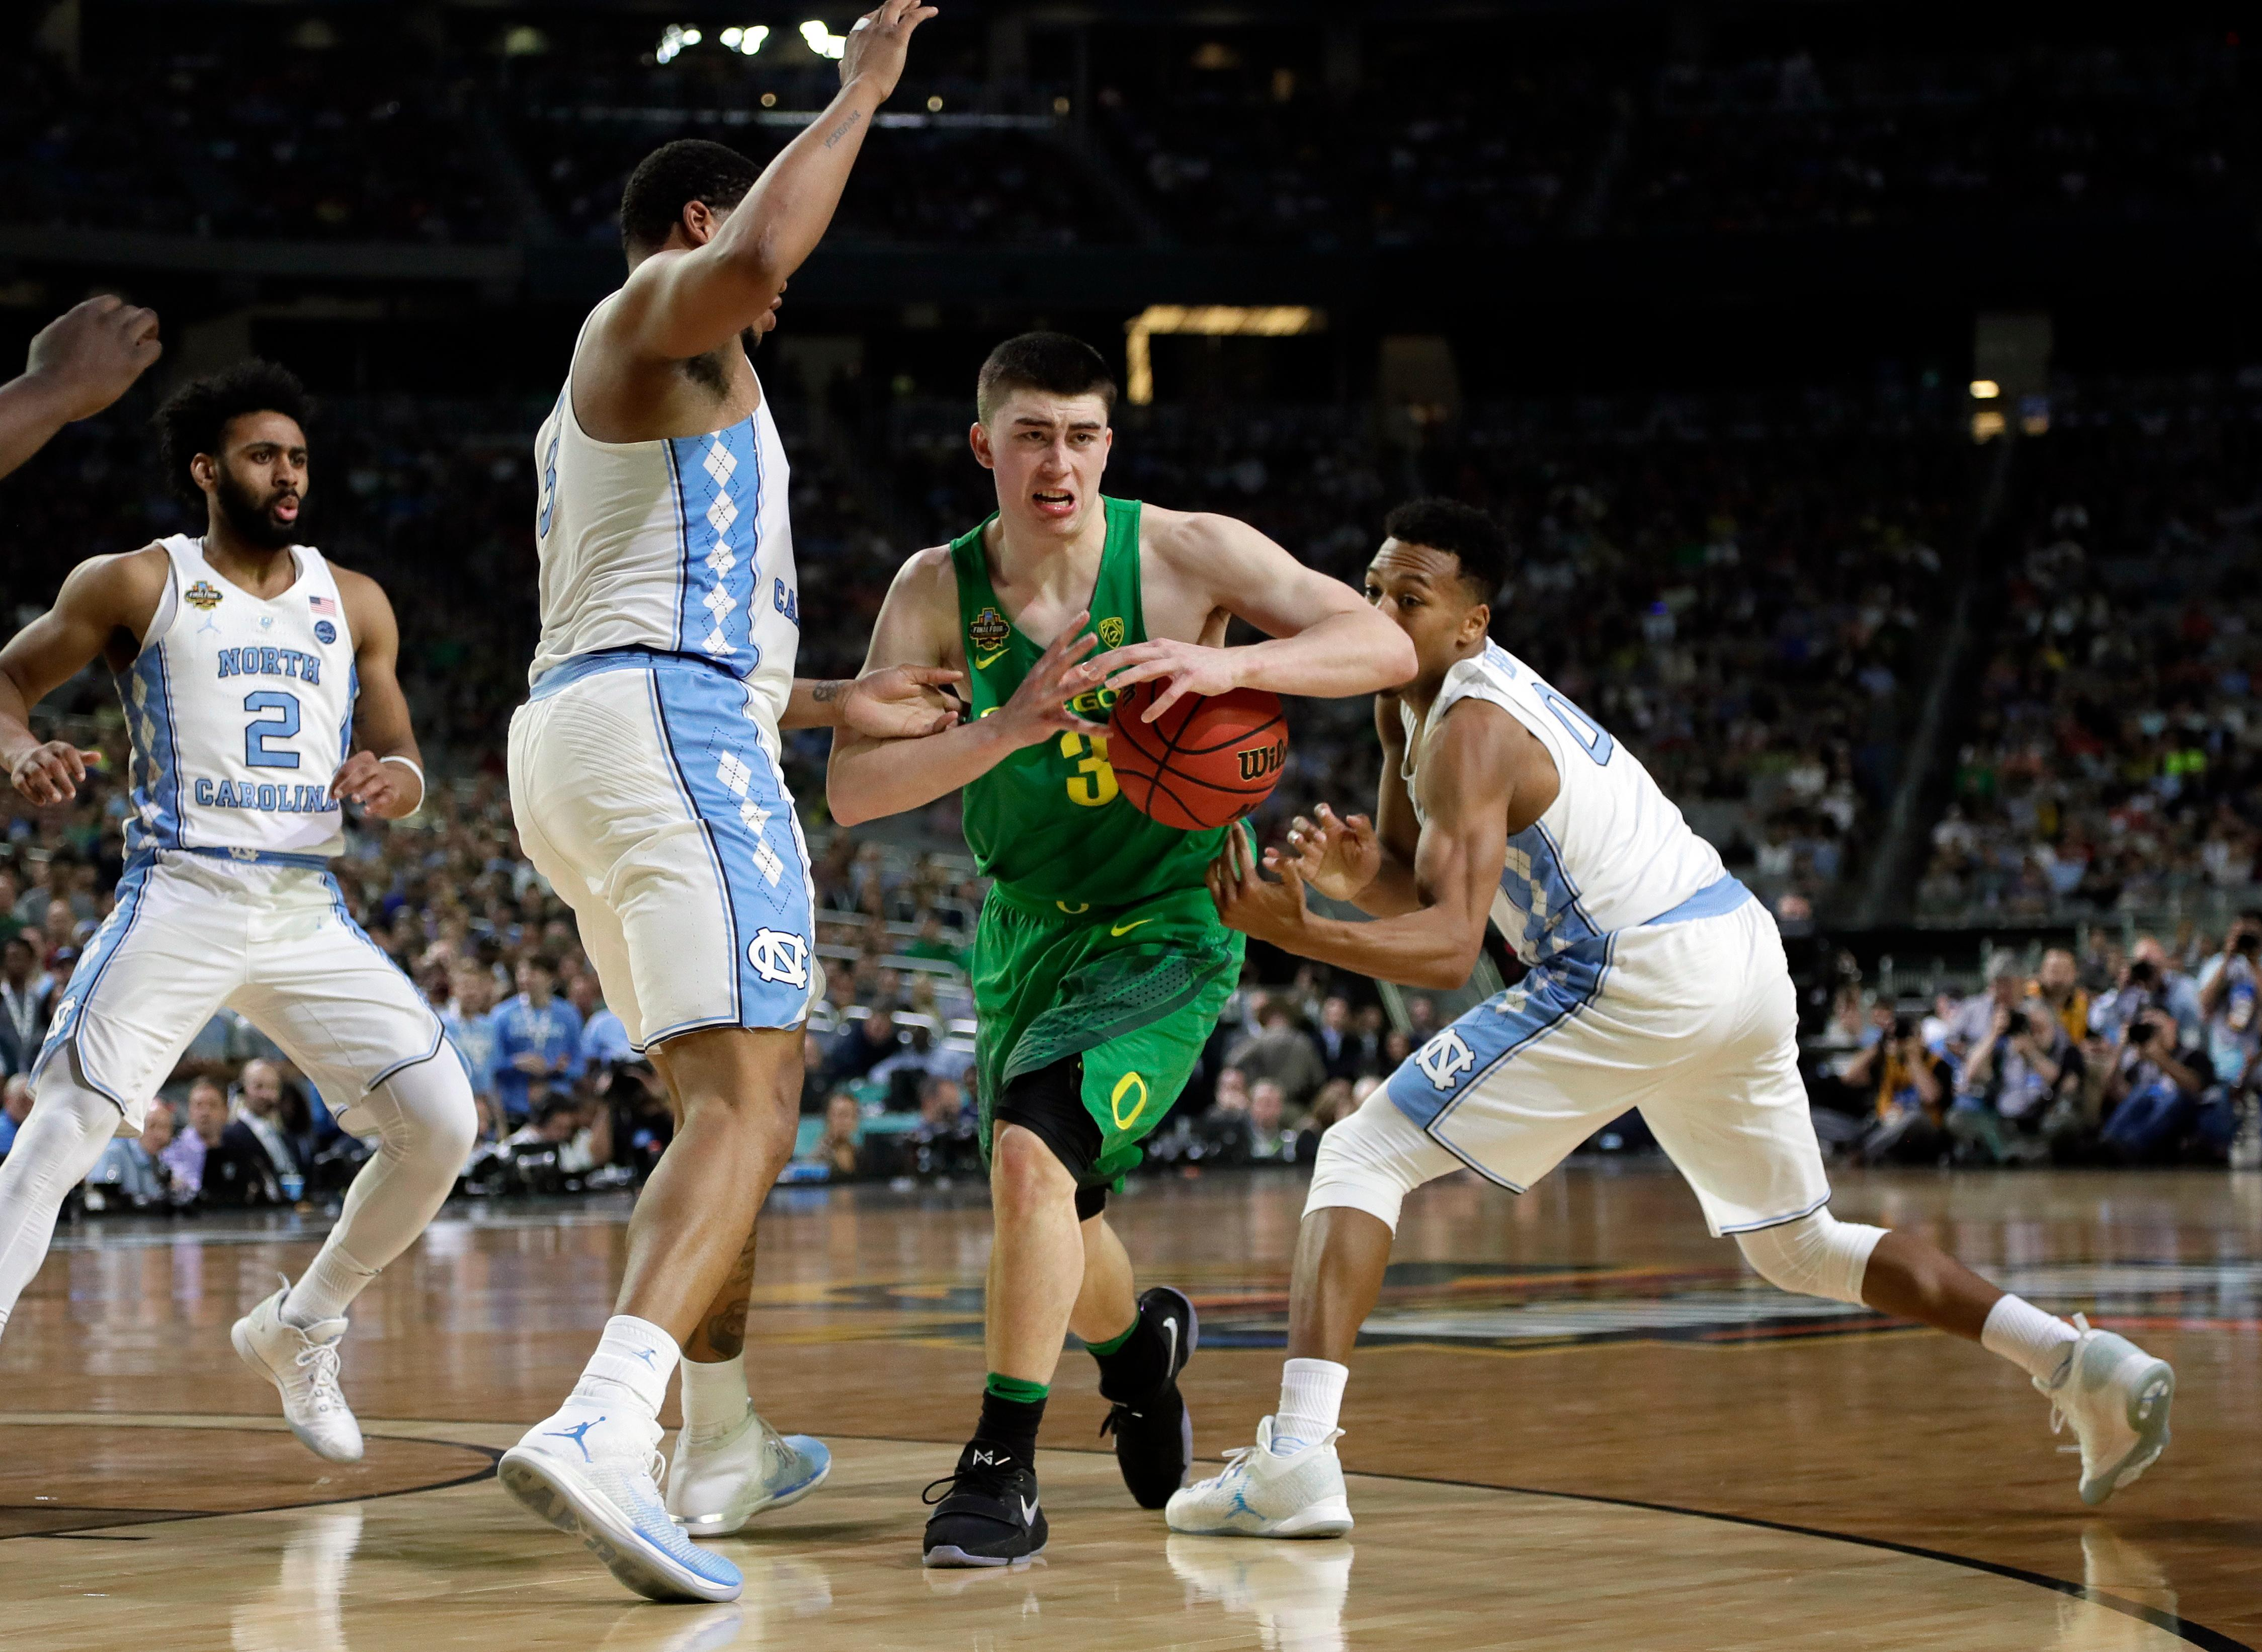 Oregon's Payton Pritchard (3) drives between North Carolina's Kennedy Meeks, left, and Nate Britt during the second half in the semifinals of the Final Four NCAA college basketball tournament, Saturday, April 1, 2017, in Glendale, Ariz. (AP Photo/Mark Humphrey)